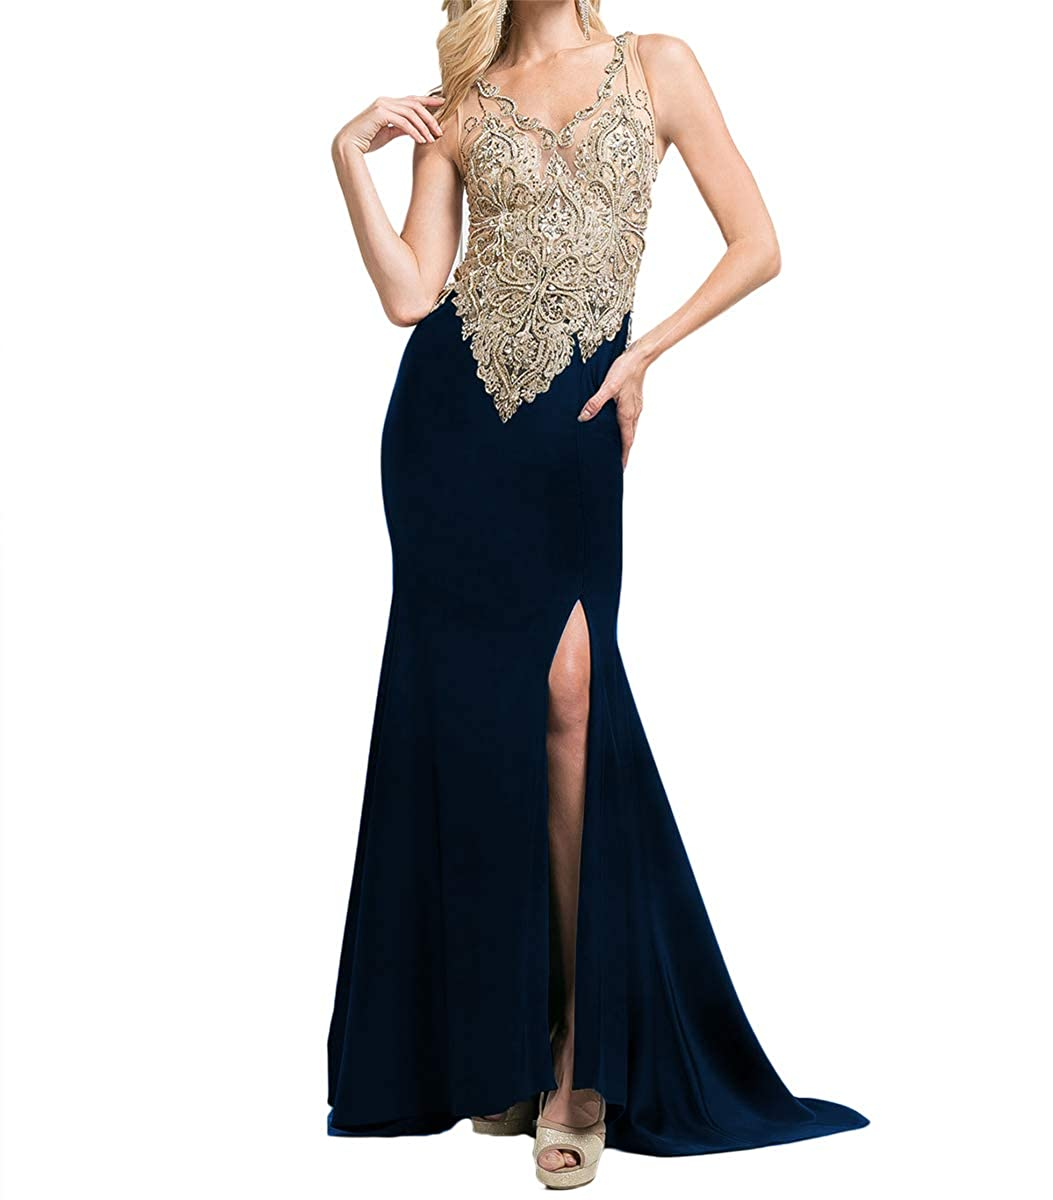 Navy bluee SDRESS Women's gold Lace Appliques V Neck Spit Side Formal Prom Homecoming Dress